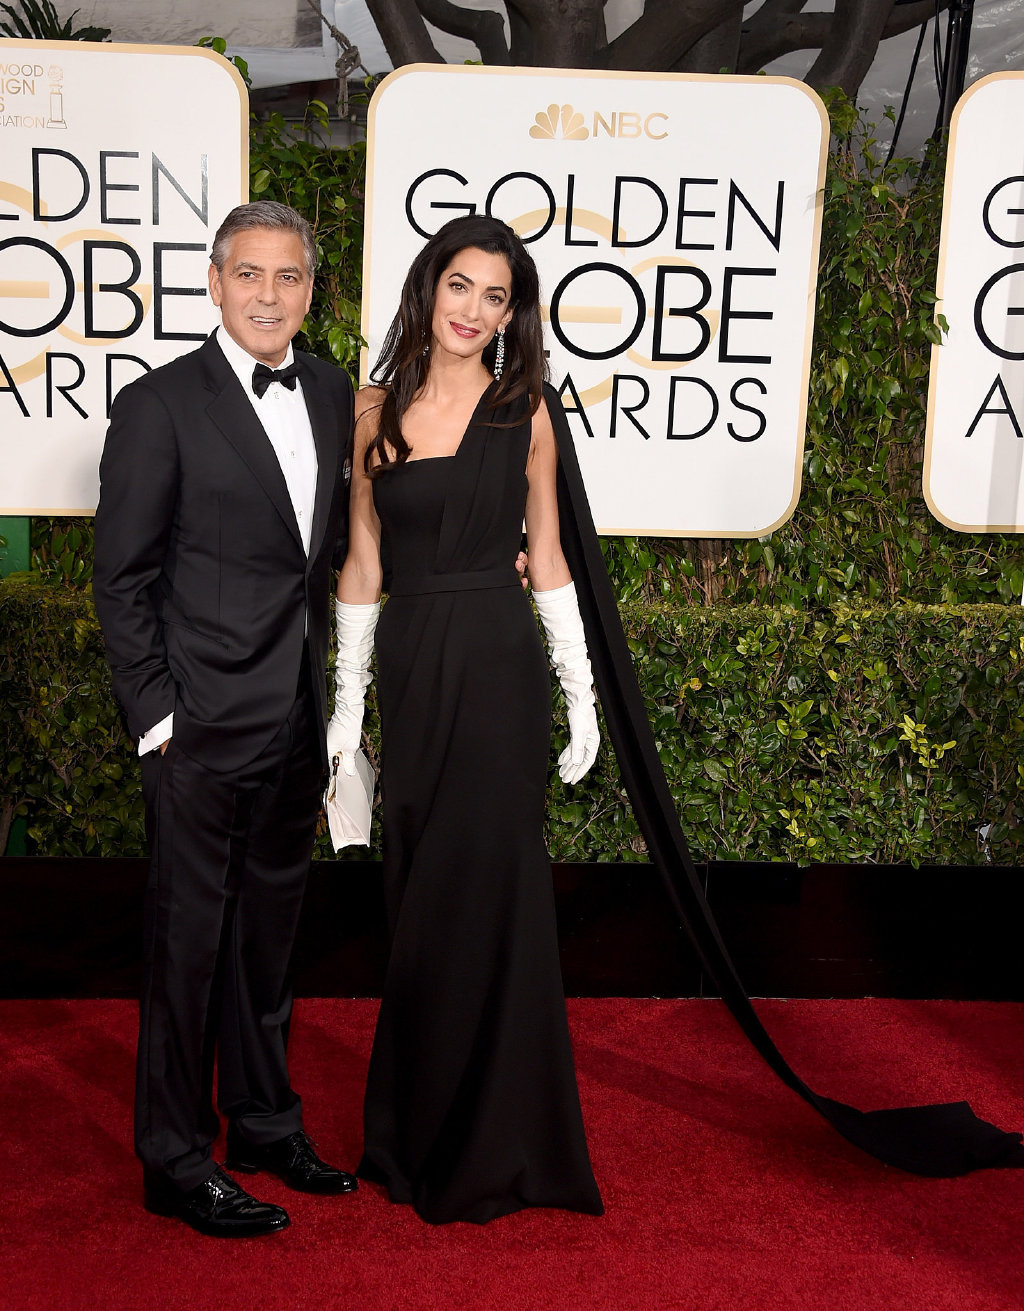 George Clooney at the Golden Globes January 2015 - Page 4 4aff7849jw1eo6kfz4ekmj218g1kwqmm